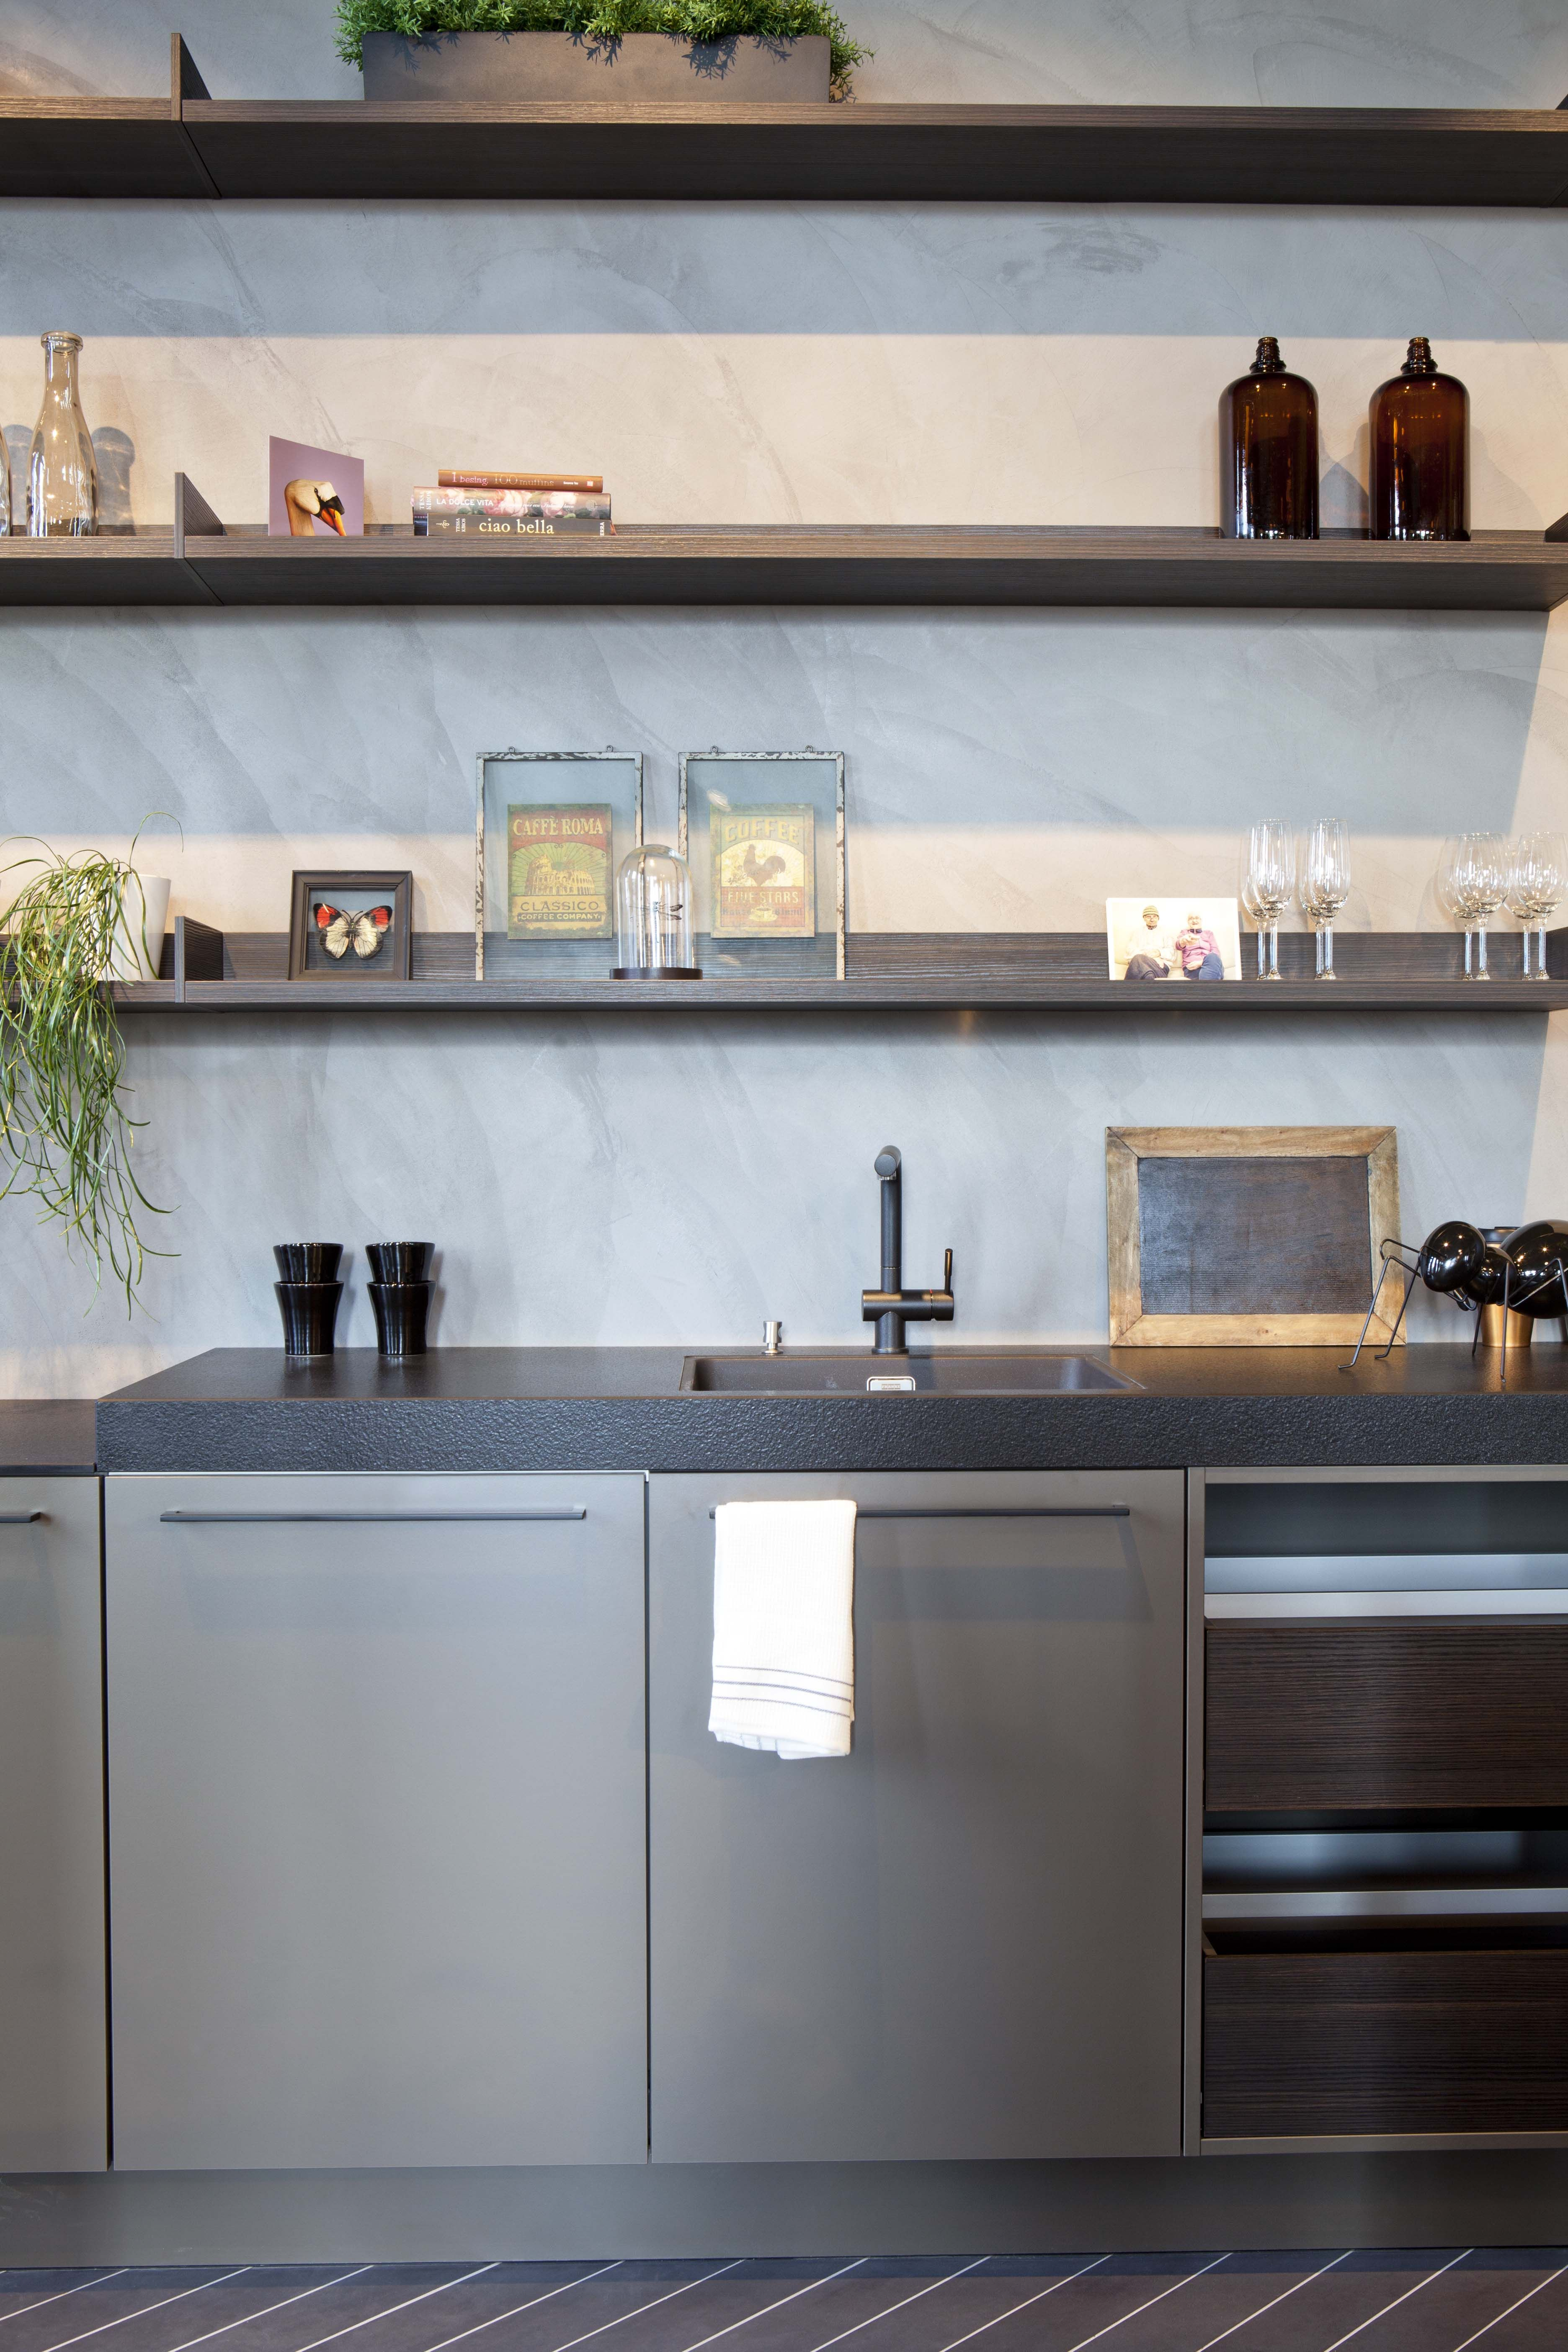 Keukens en badkamers showroom | Pinterest | Kitchens, Industrial ...